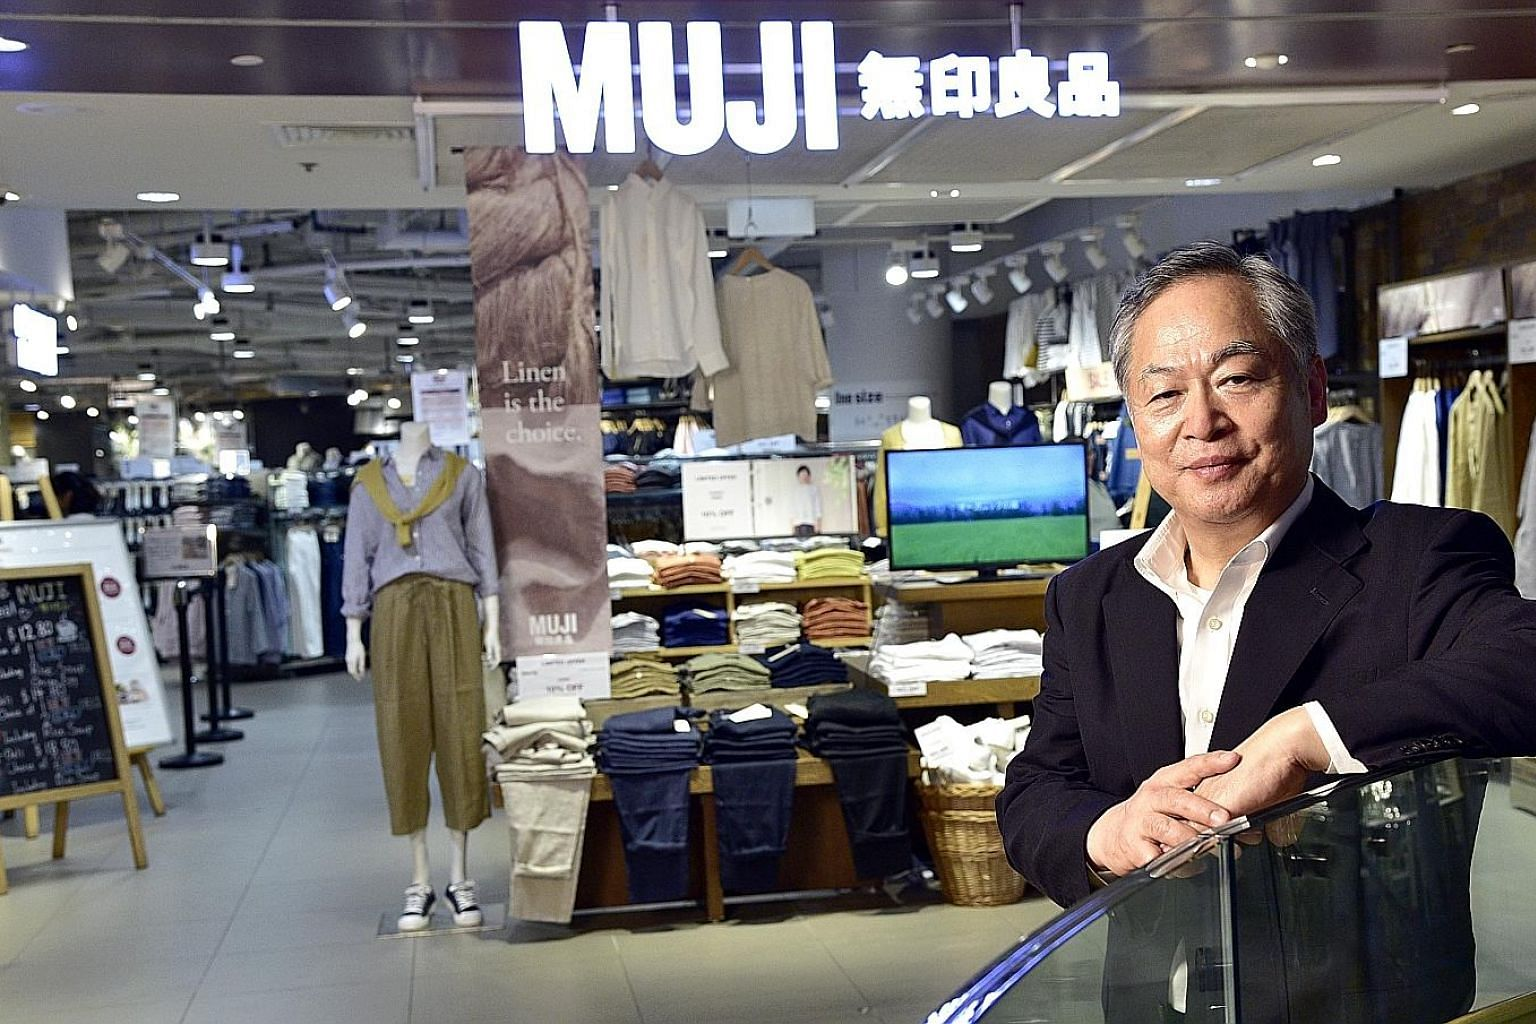 Muji president Satoru Matsuzaki says there will be 13 stores in Singapore by the end of the year and wants to triple the size of existing stores. This would make the stores large enough to offer a wider range of products and services like workshops.